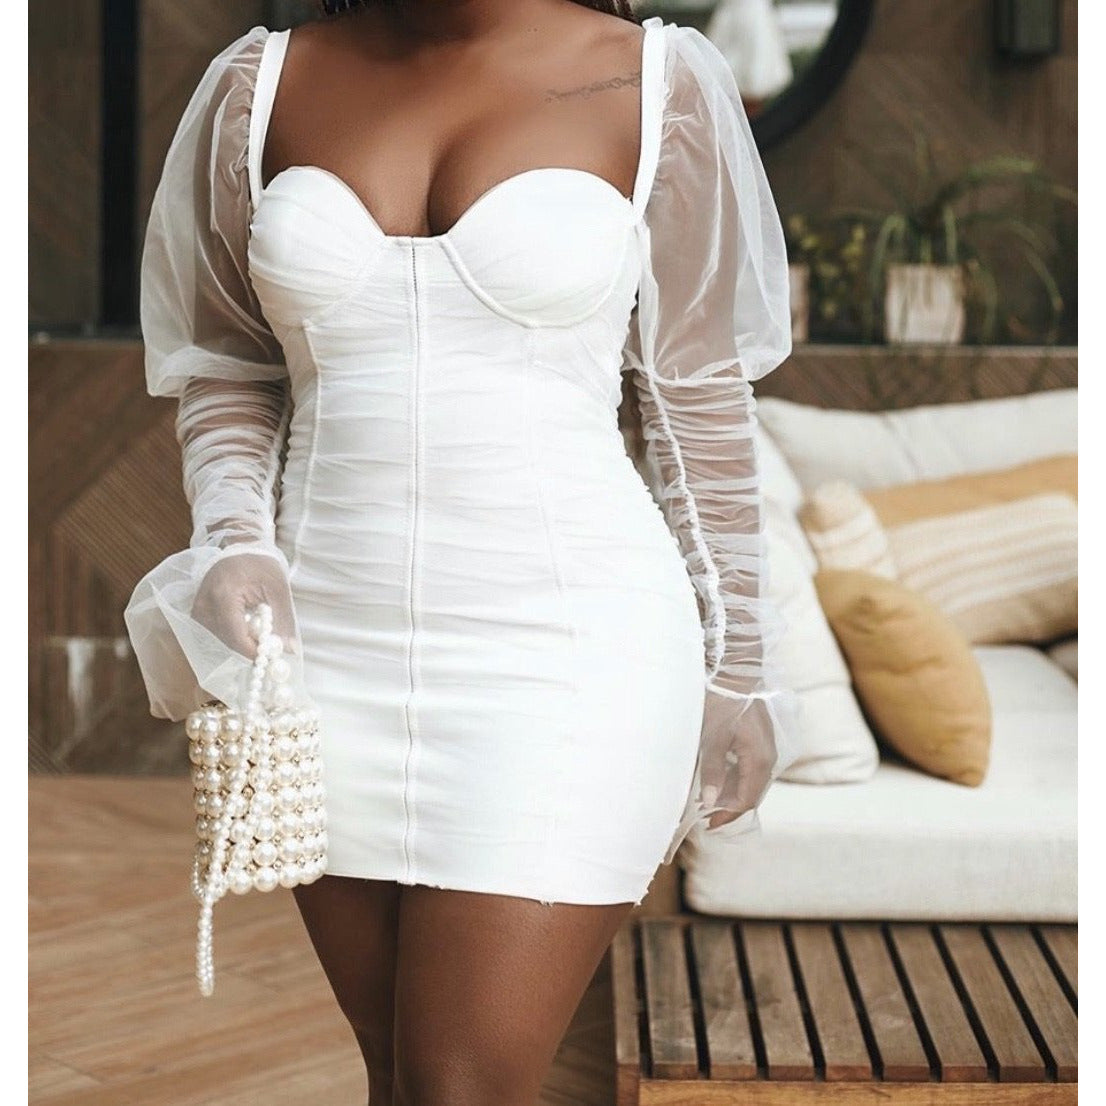 Cupids Heart Bandage Dress